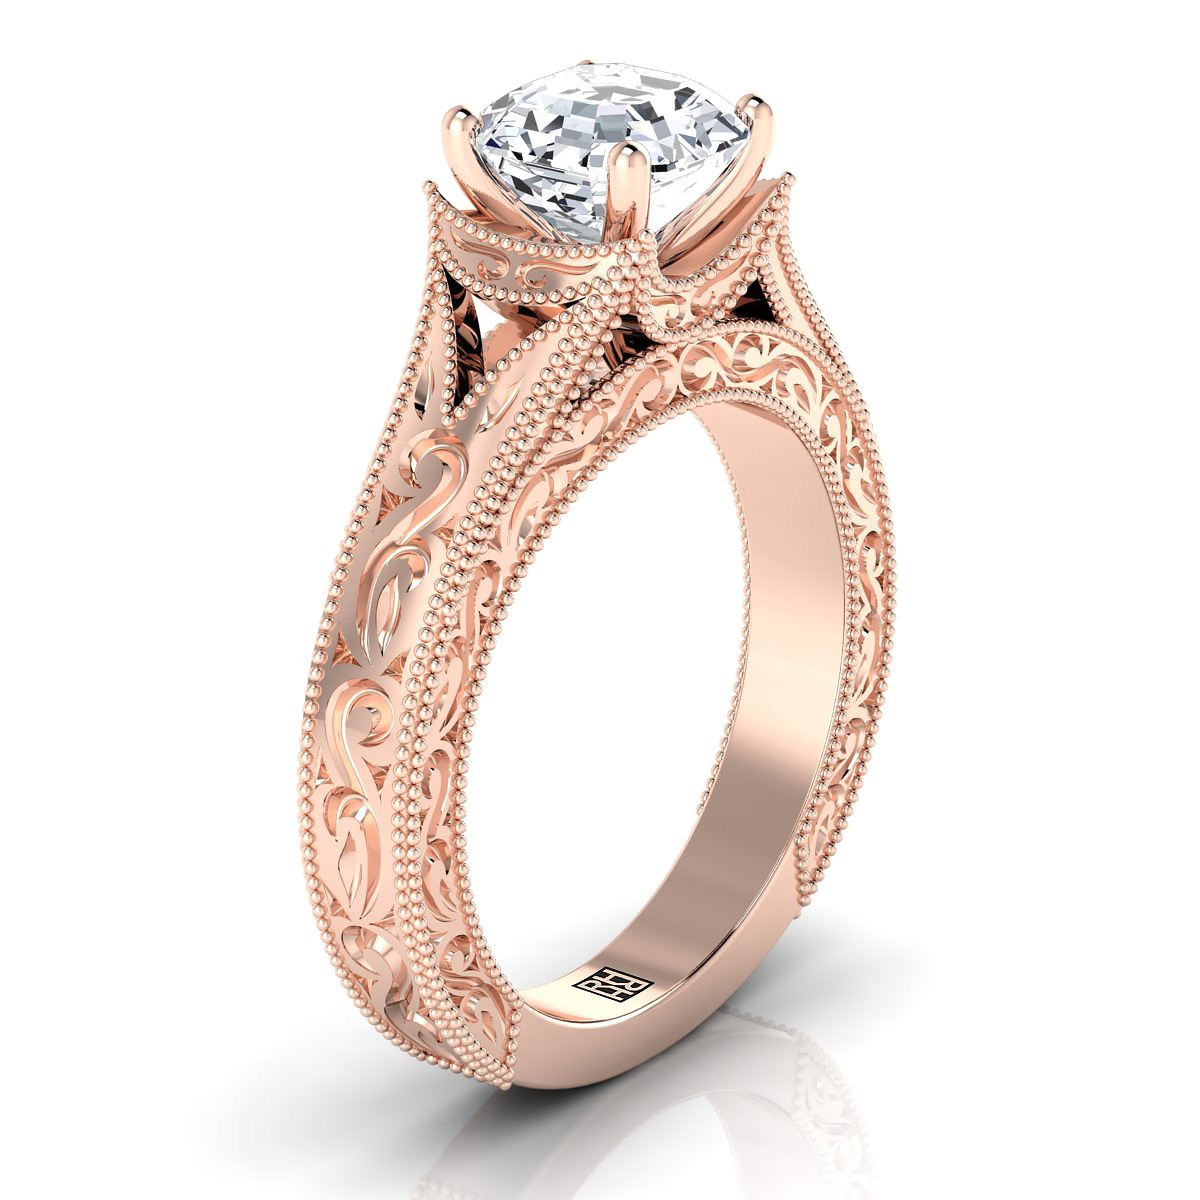 Asscher Cut Antique Inspired Engraved Diamond Engagement Ring With Millgrain Finish In 14k Rose Gold